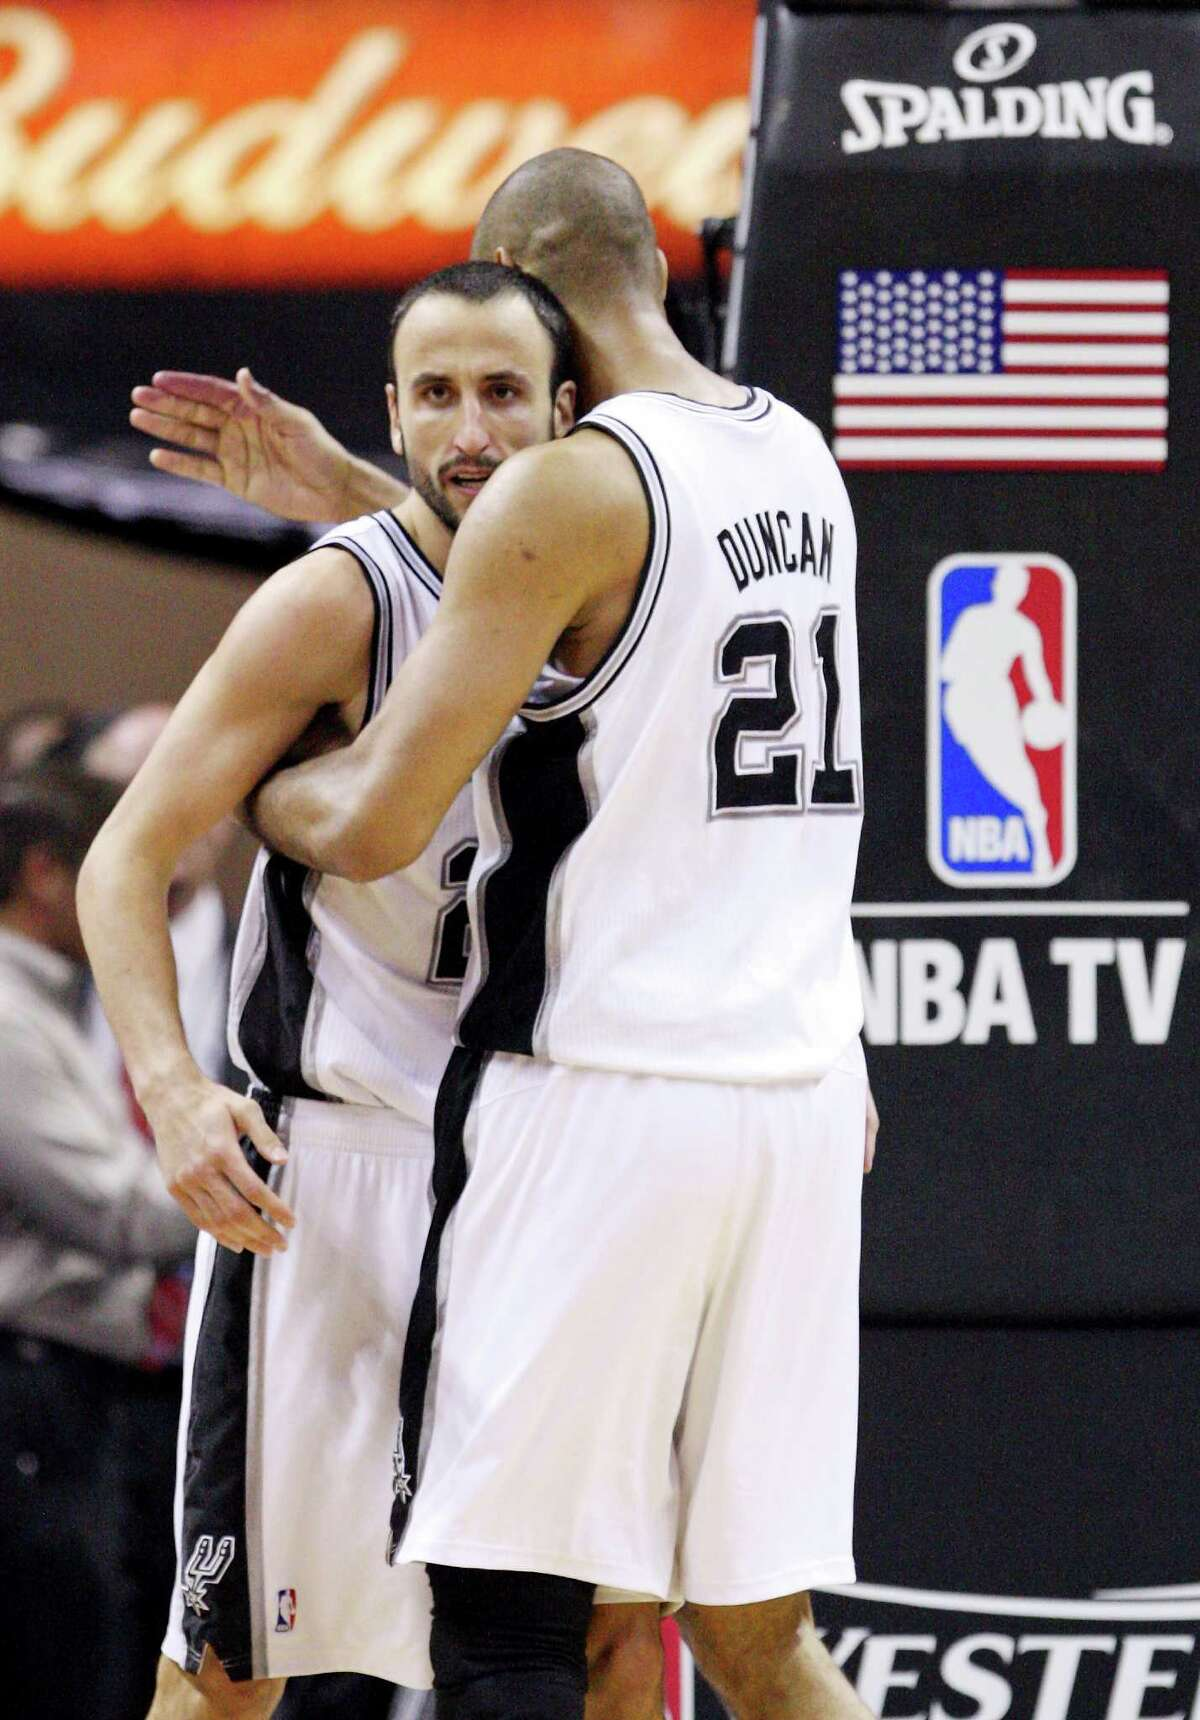 San Antonio Spurs' Tim Duncan (21) embraces San Antonio Spurs' Manu Ginobili (20) during the second half of game one of the NBA Western Conference Finals in San Antonio, Texas, Sunday, May 27, 2012.